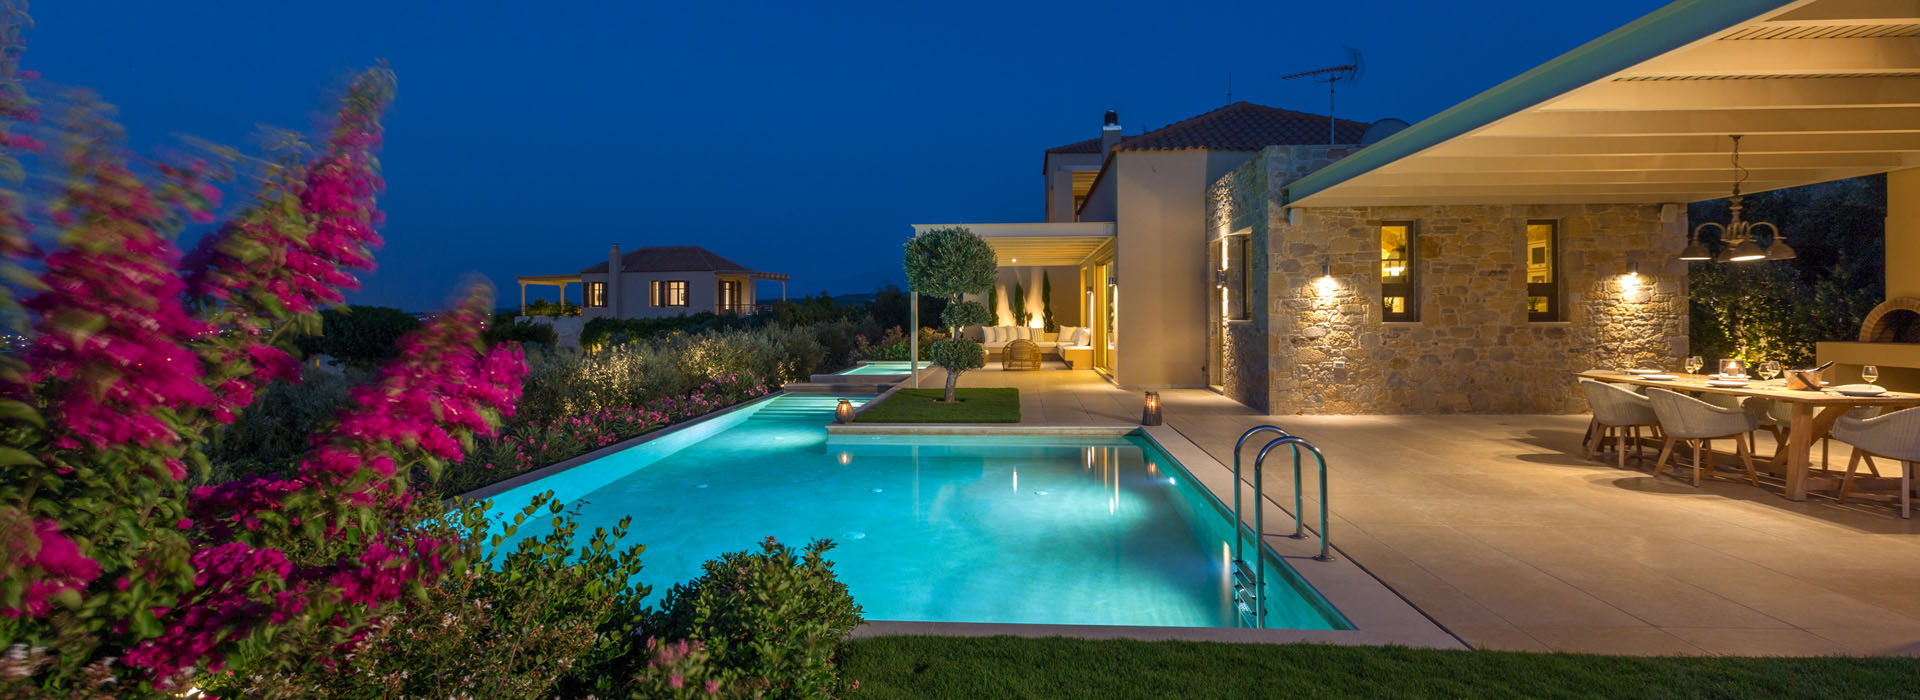 J&G Villas at Chania Greece